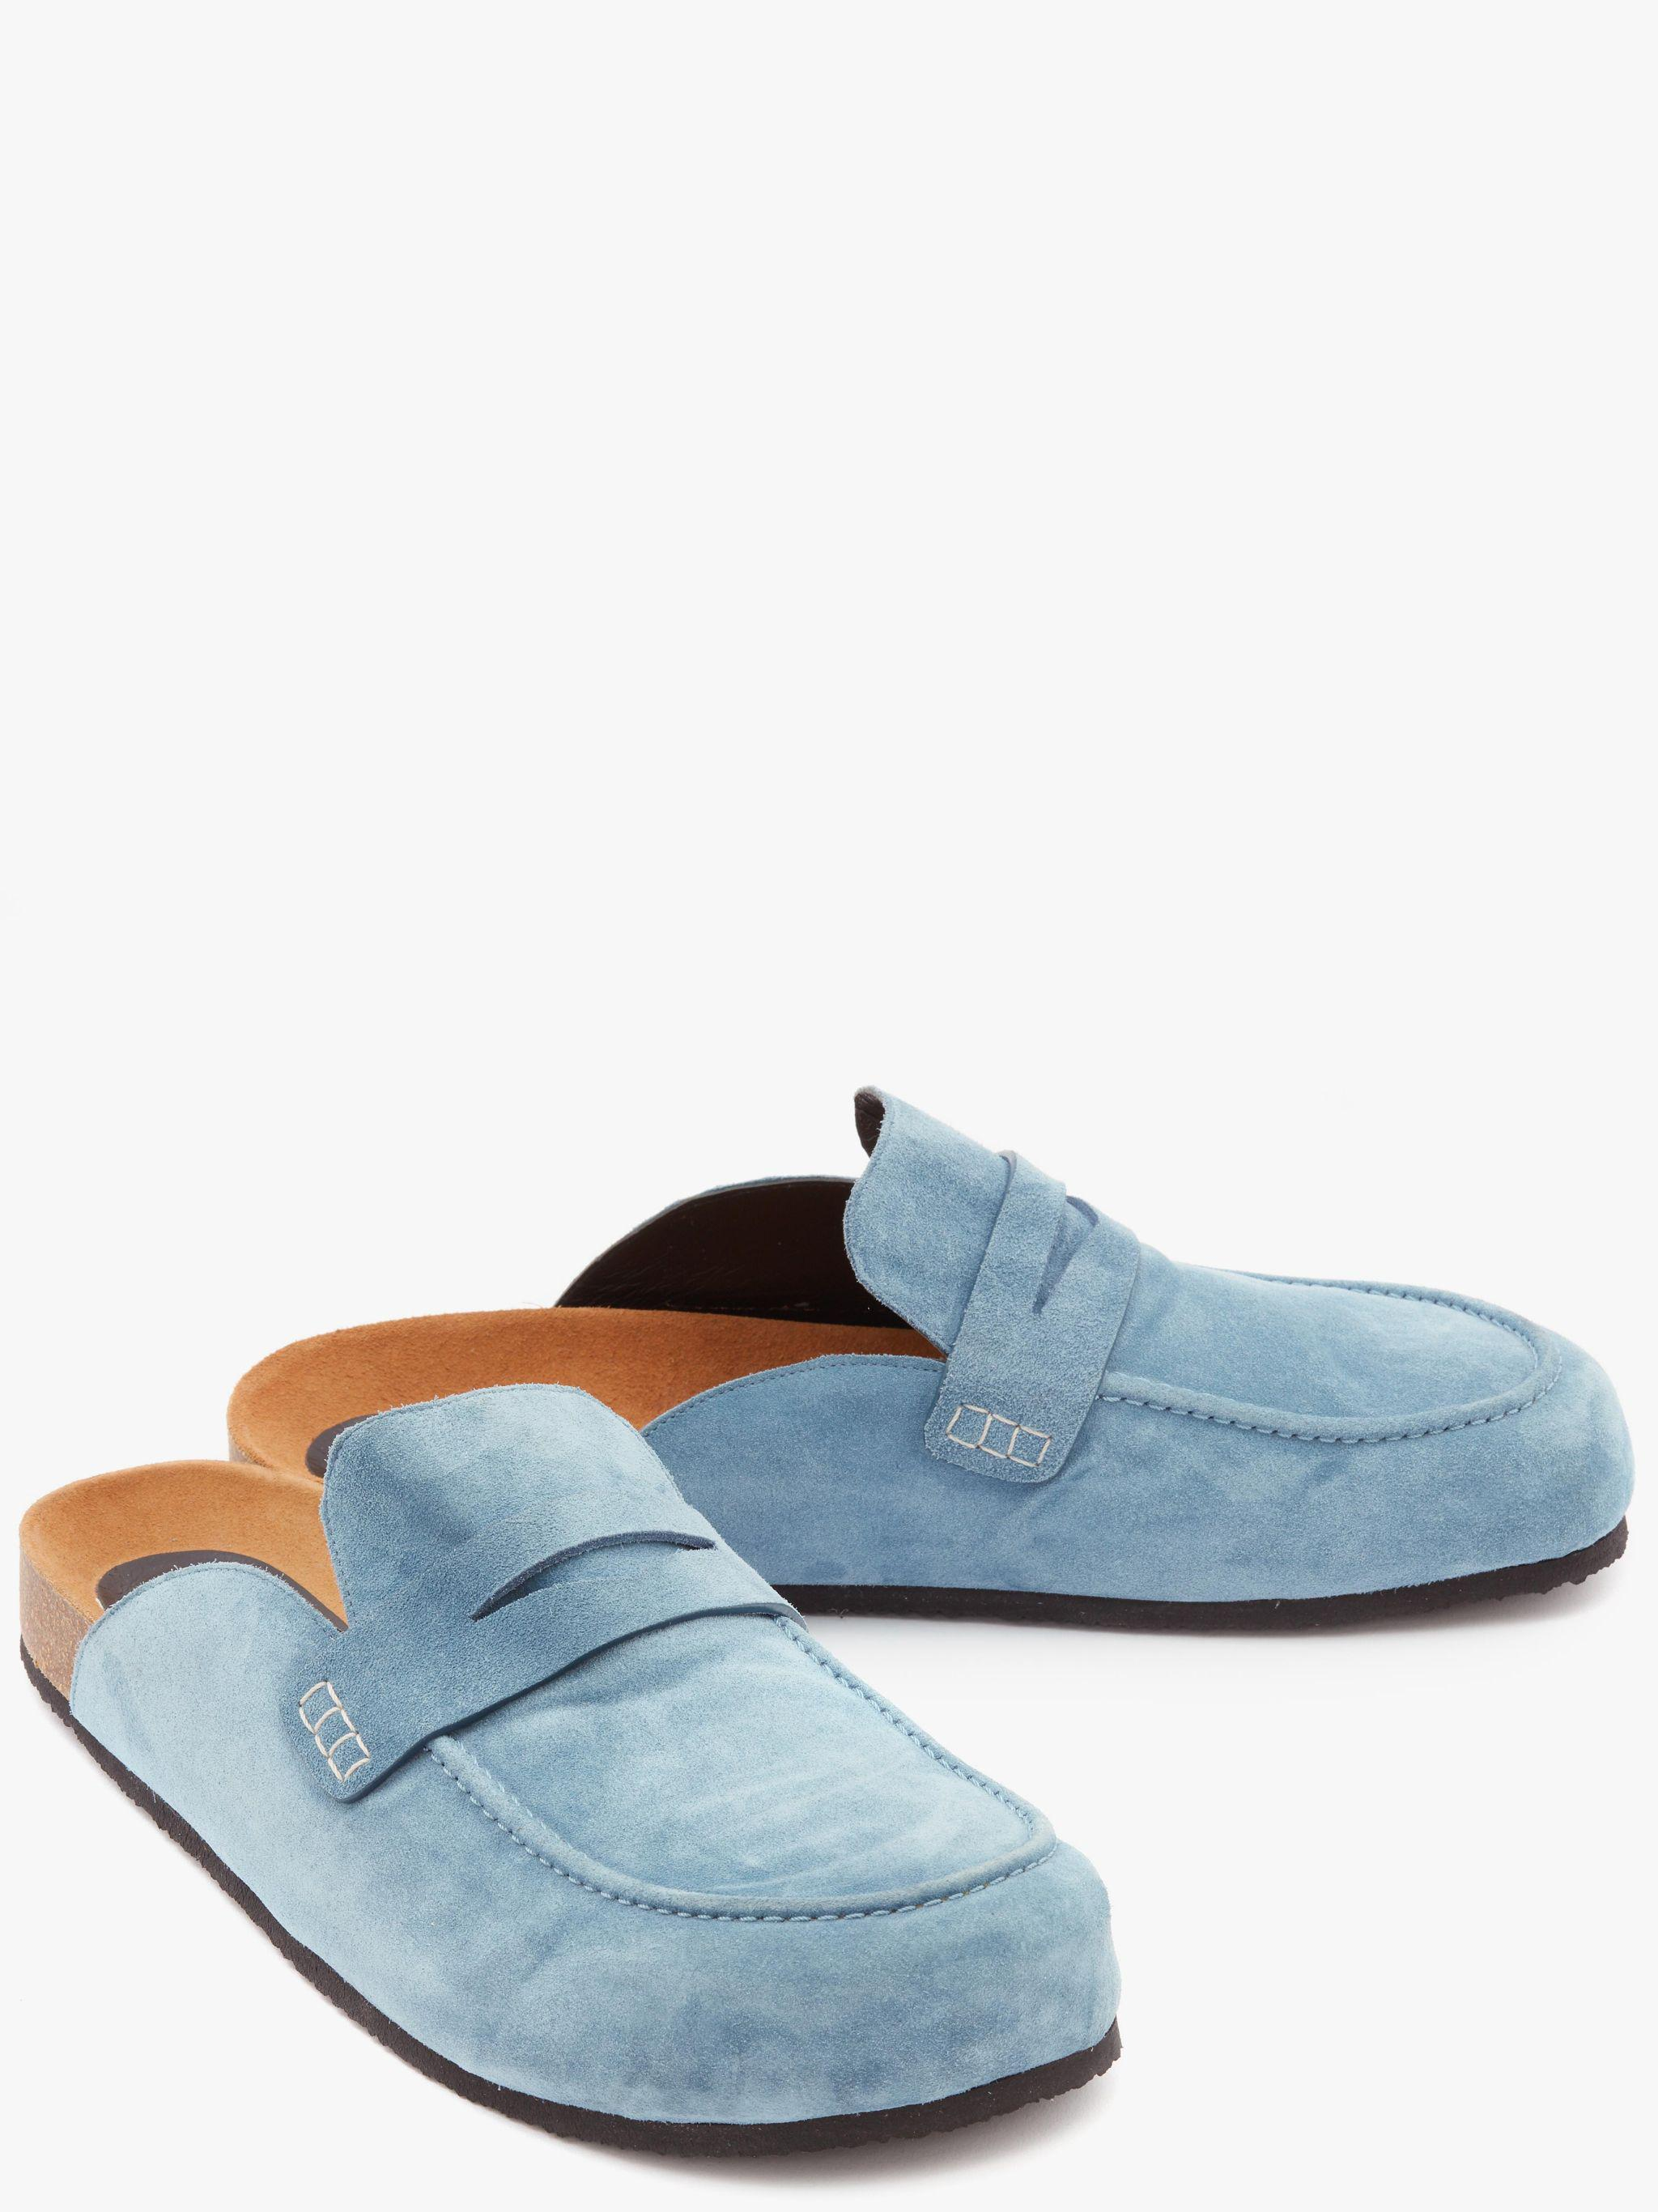 SUEDE LOAFER MULES 1